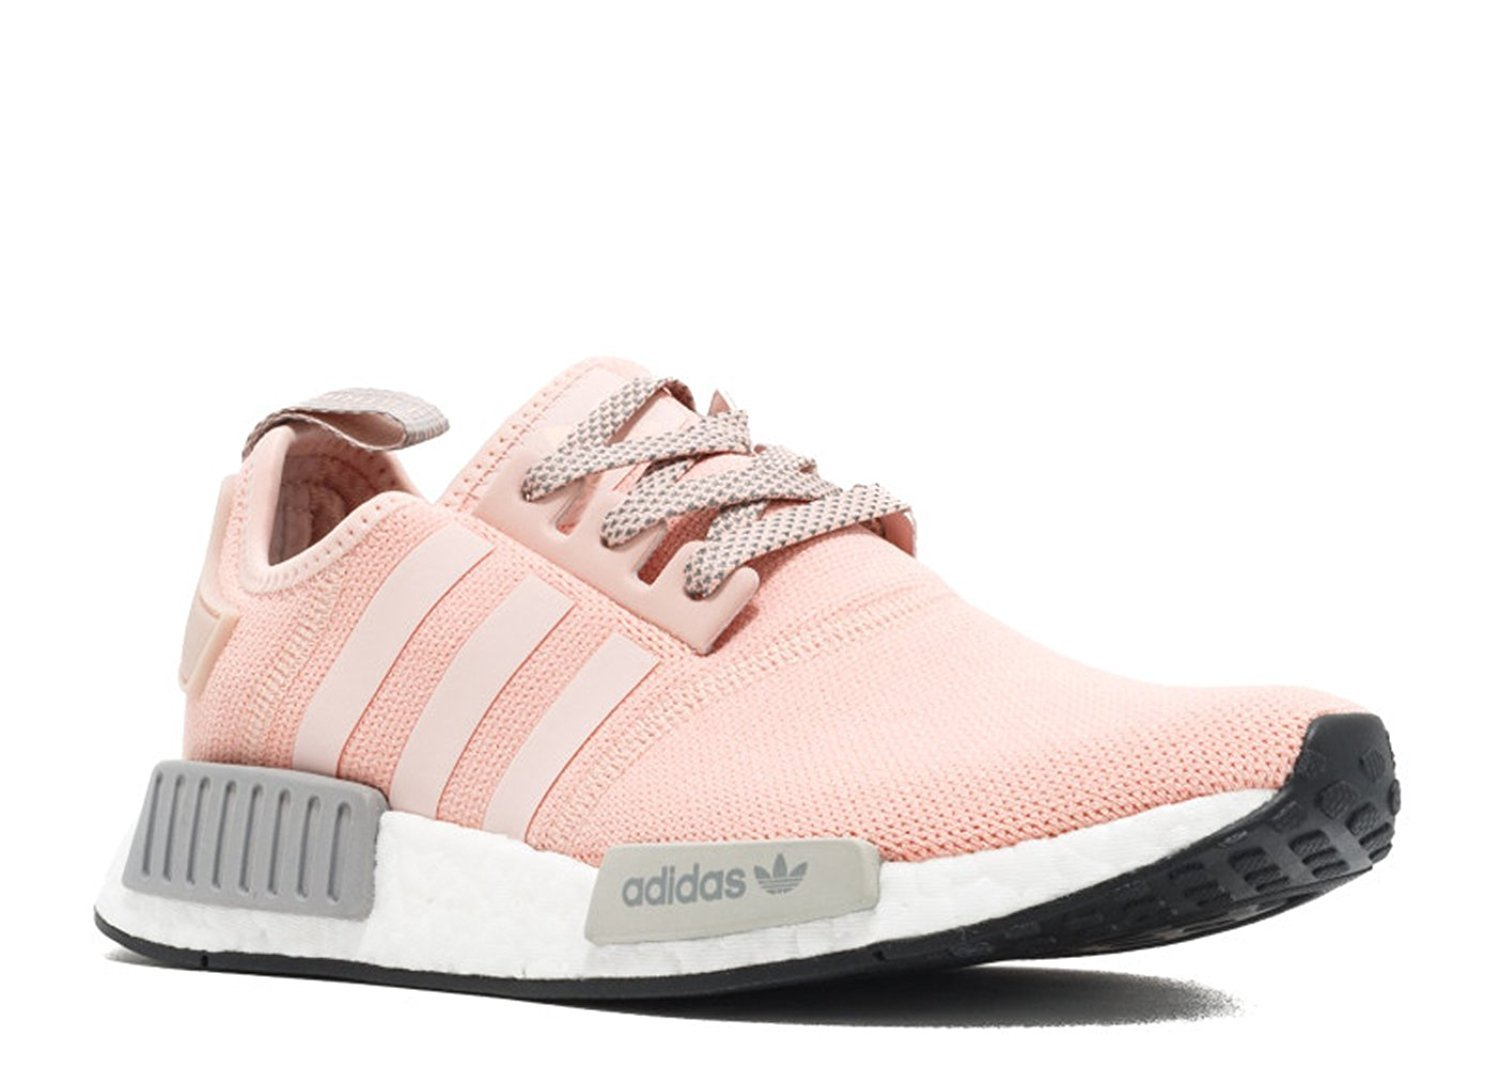 adidas Originals NMD_R1 Womens Running Trainers Sneakers B01N9W788D 7.5 B(M) US|Vapour Pink, Light Onix